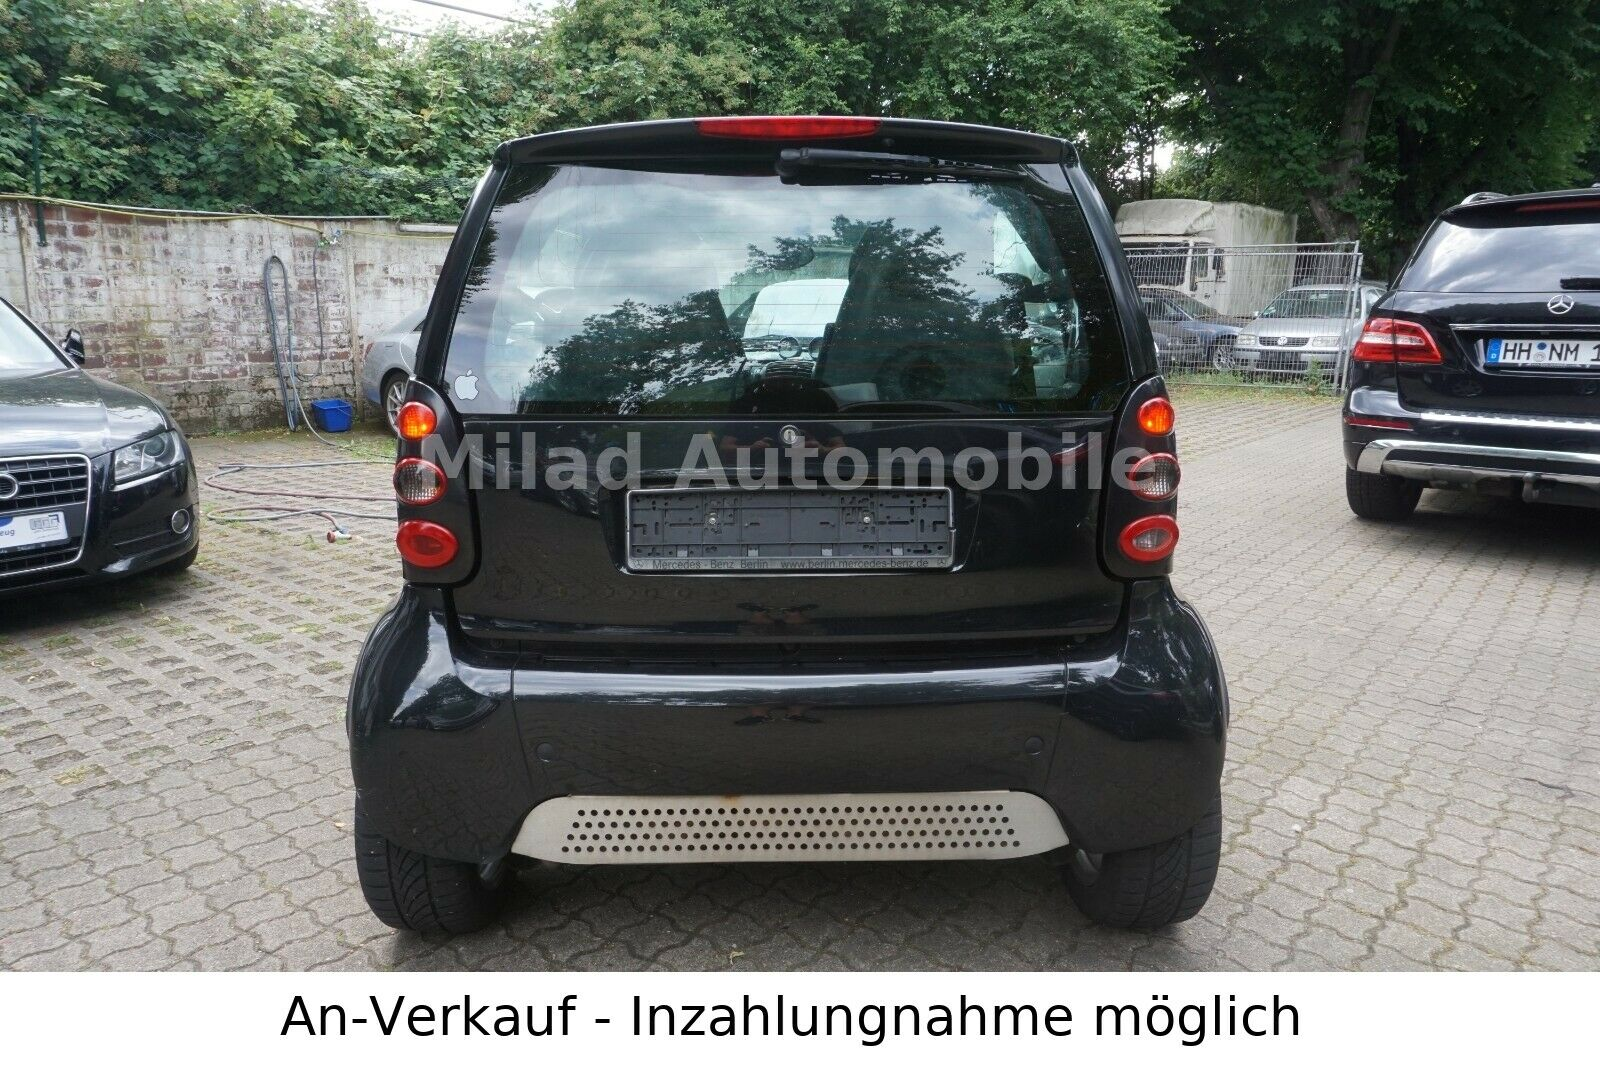 SMART ForTwo Aut. VOLL Pano LederServo ATM bei 115t km